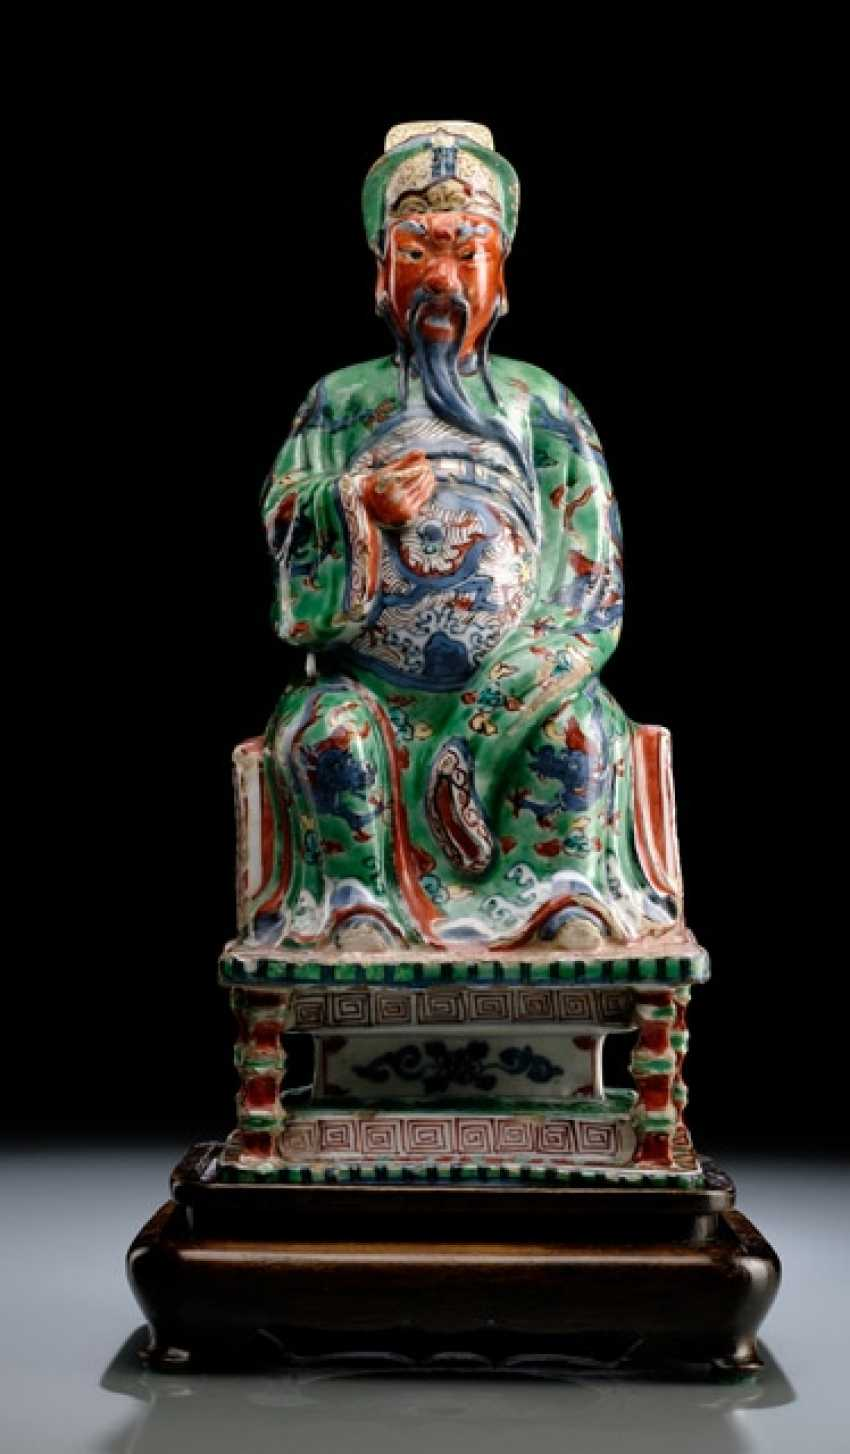 A VERY RARE WUCAI FIGURE OF GUANDI ON A THRONE WITH WOOD - photo 3